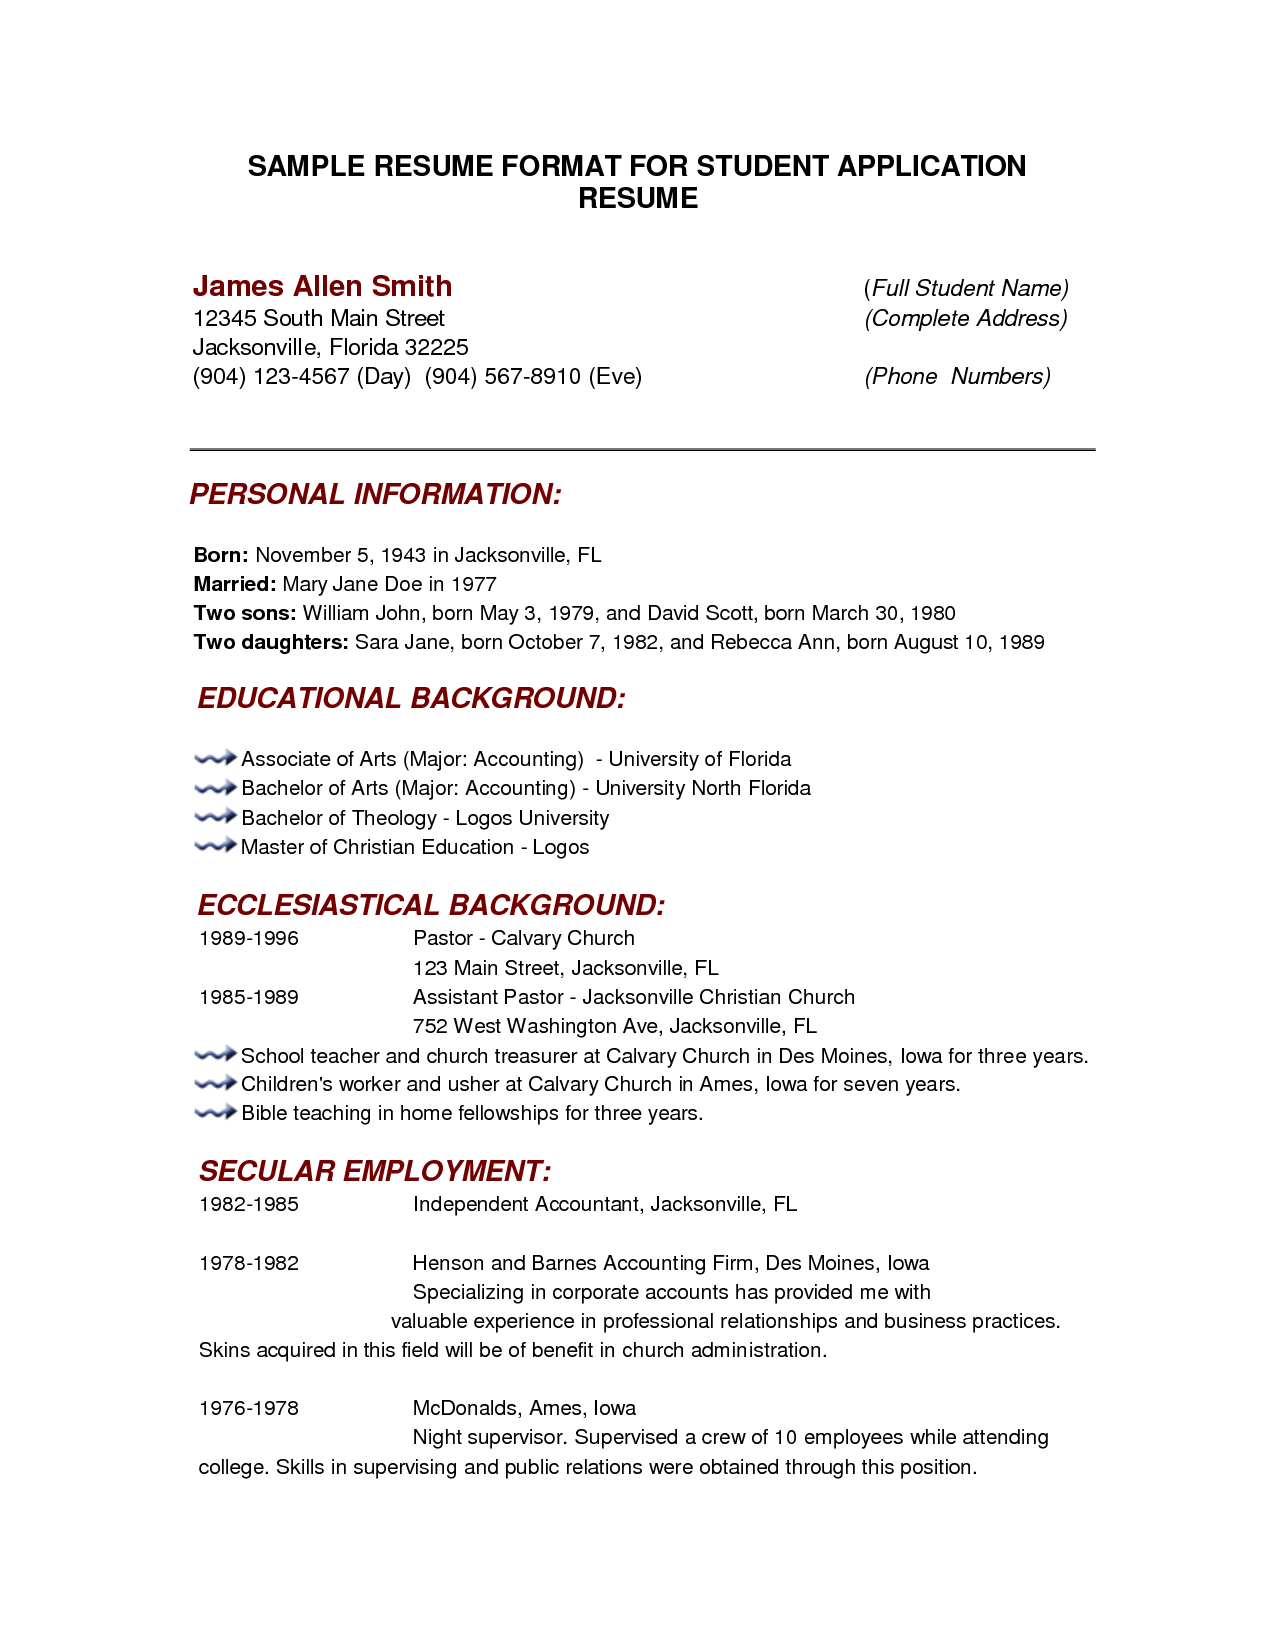 student cv sample Matchboard